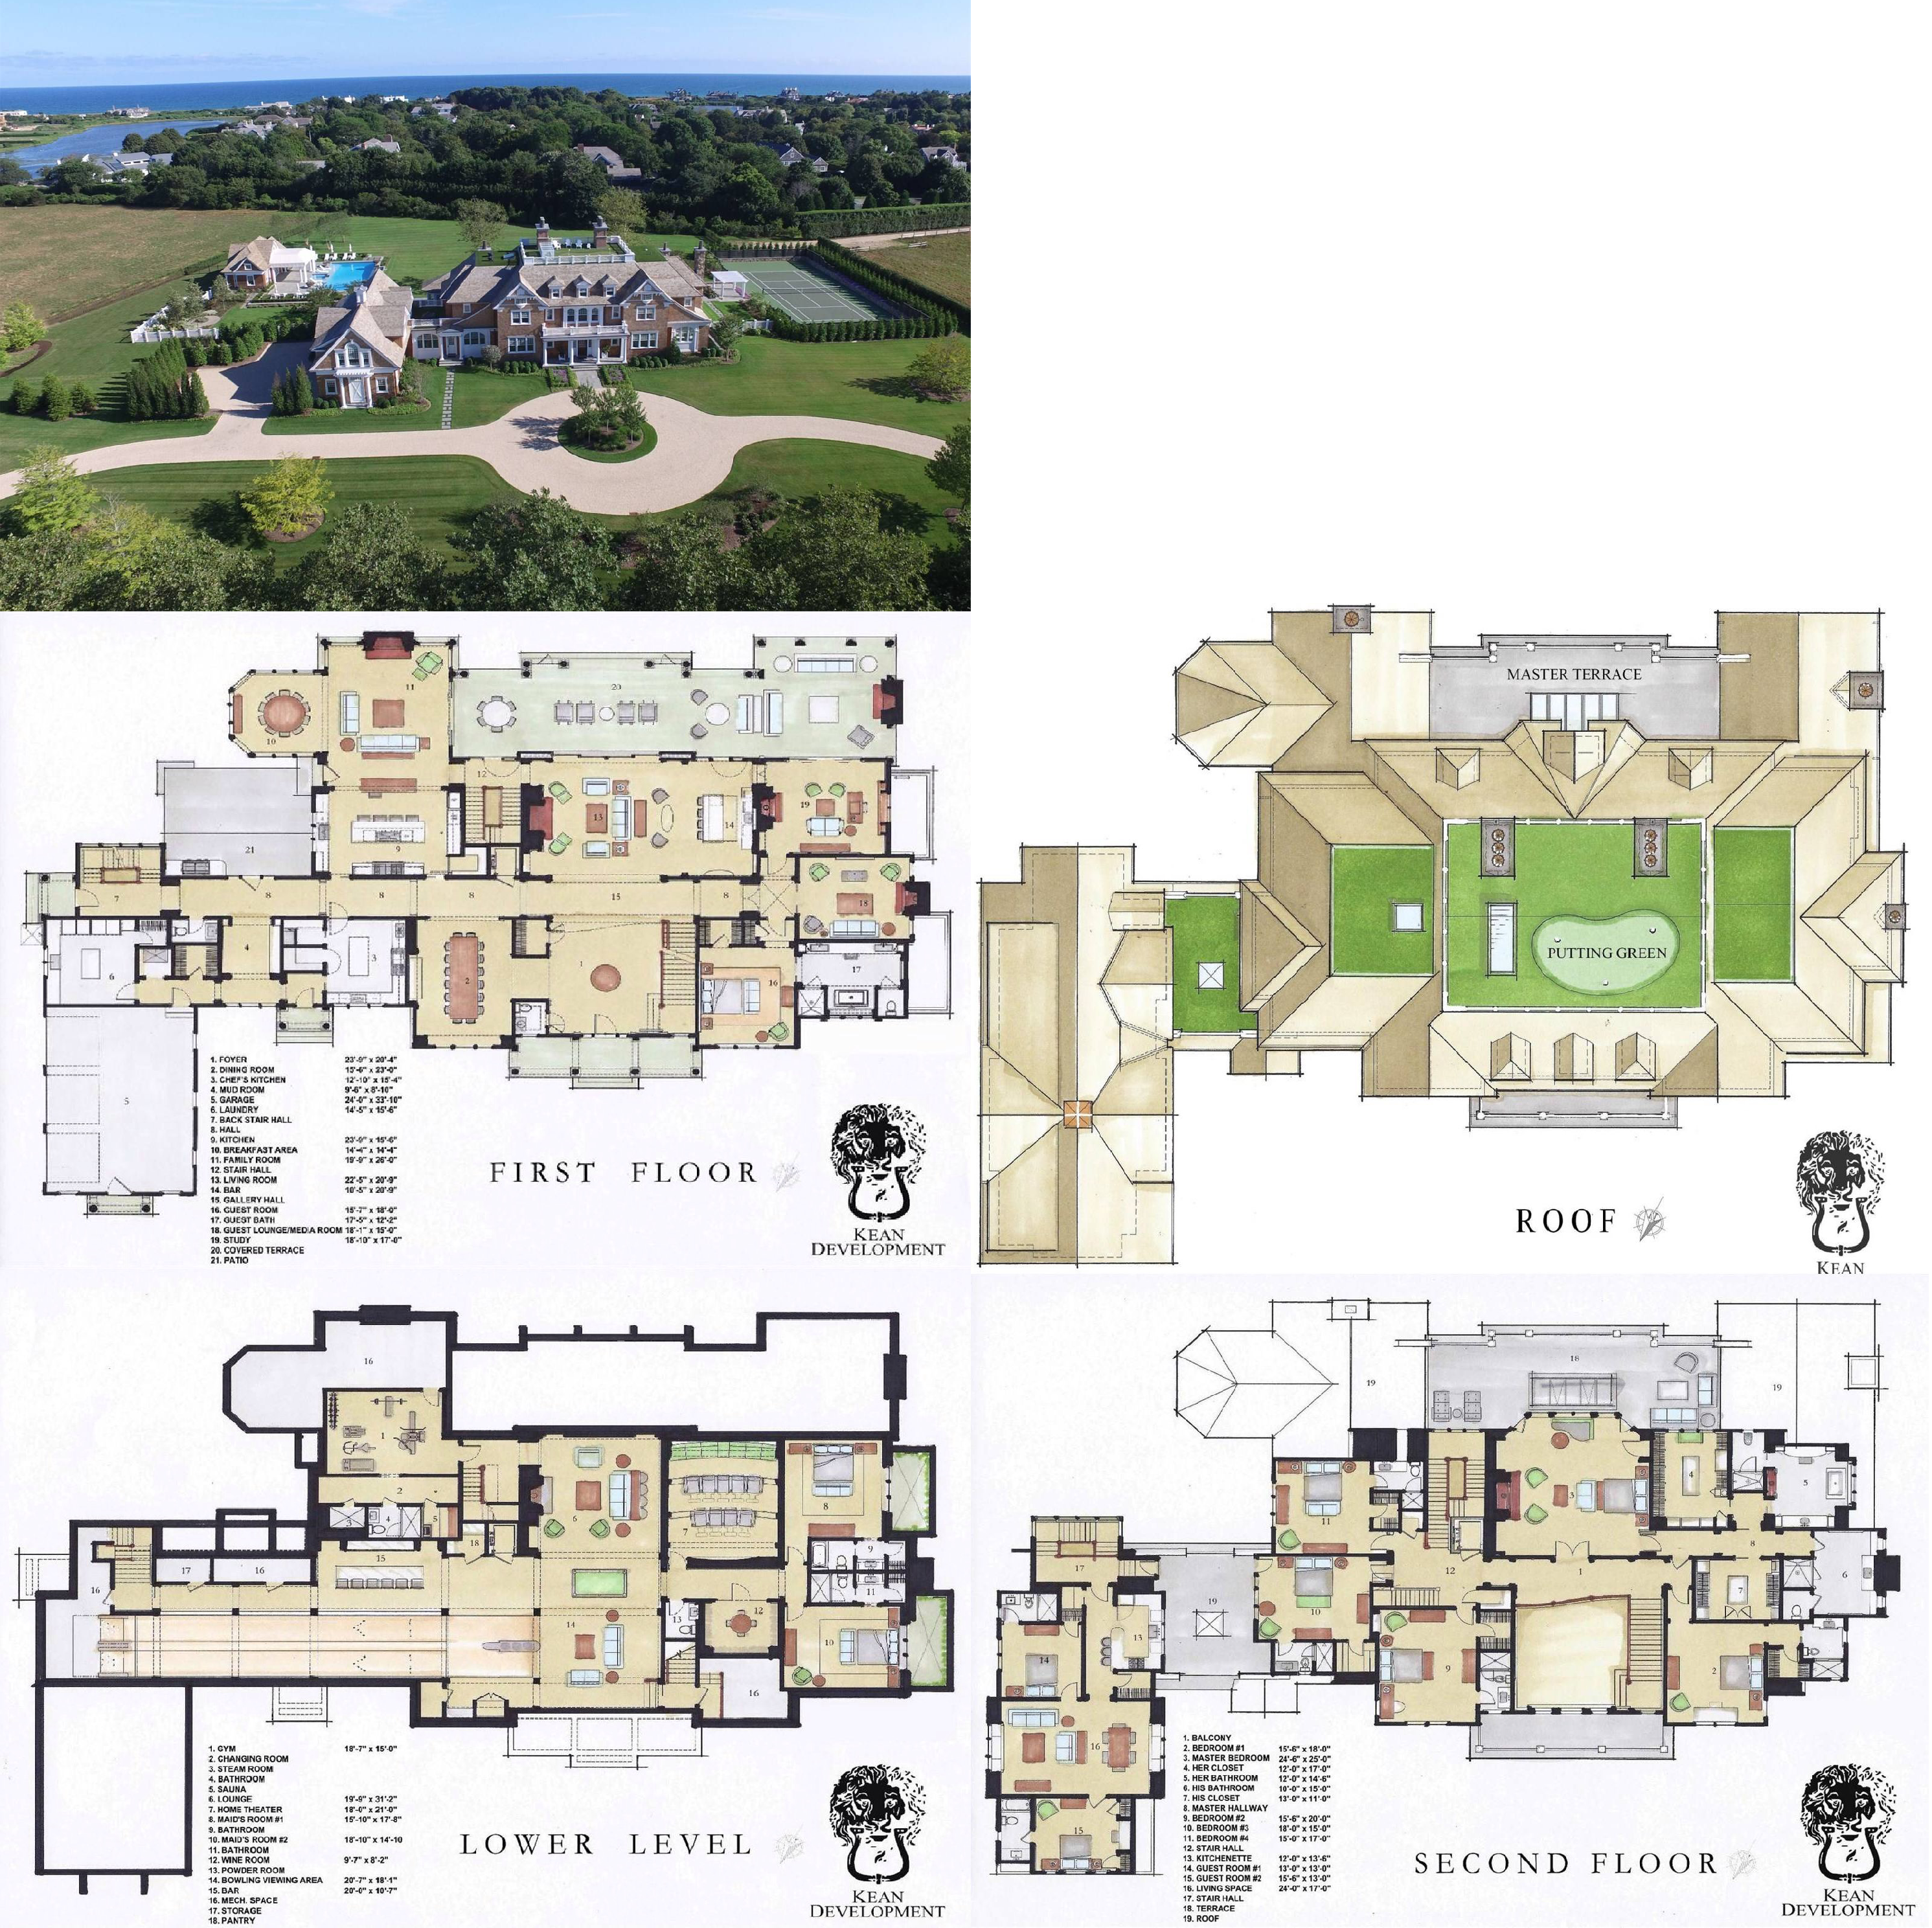 Update 9 Olde Towne Lane Southampton Ny 11968 Sotheby S International Realty Offers A Wide Select House Plans Mansion Mansion Floor Plan Dream House Plans